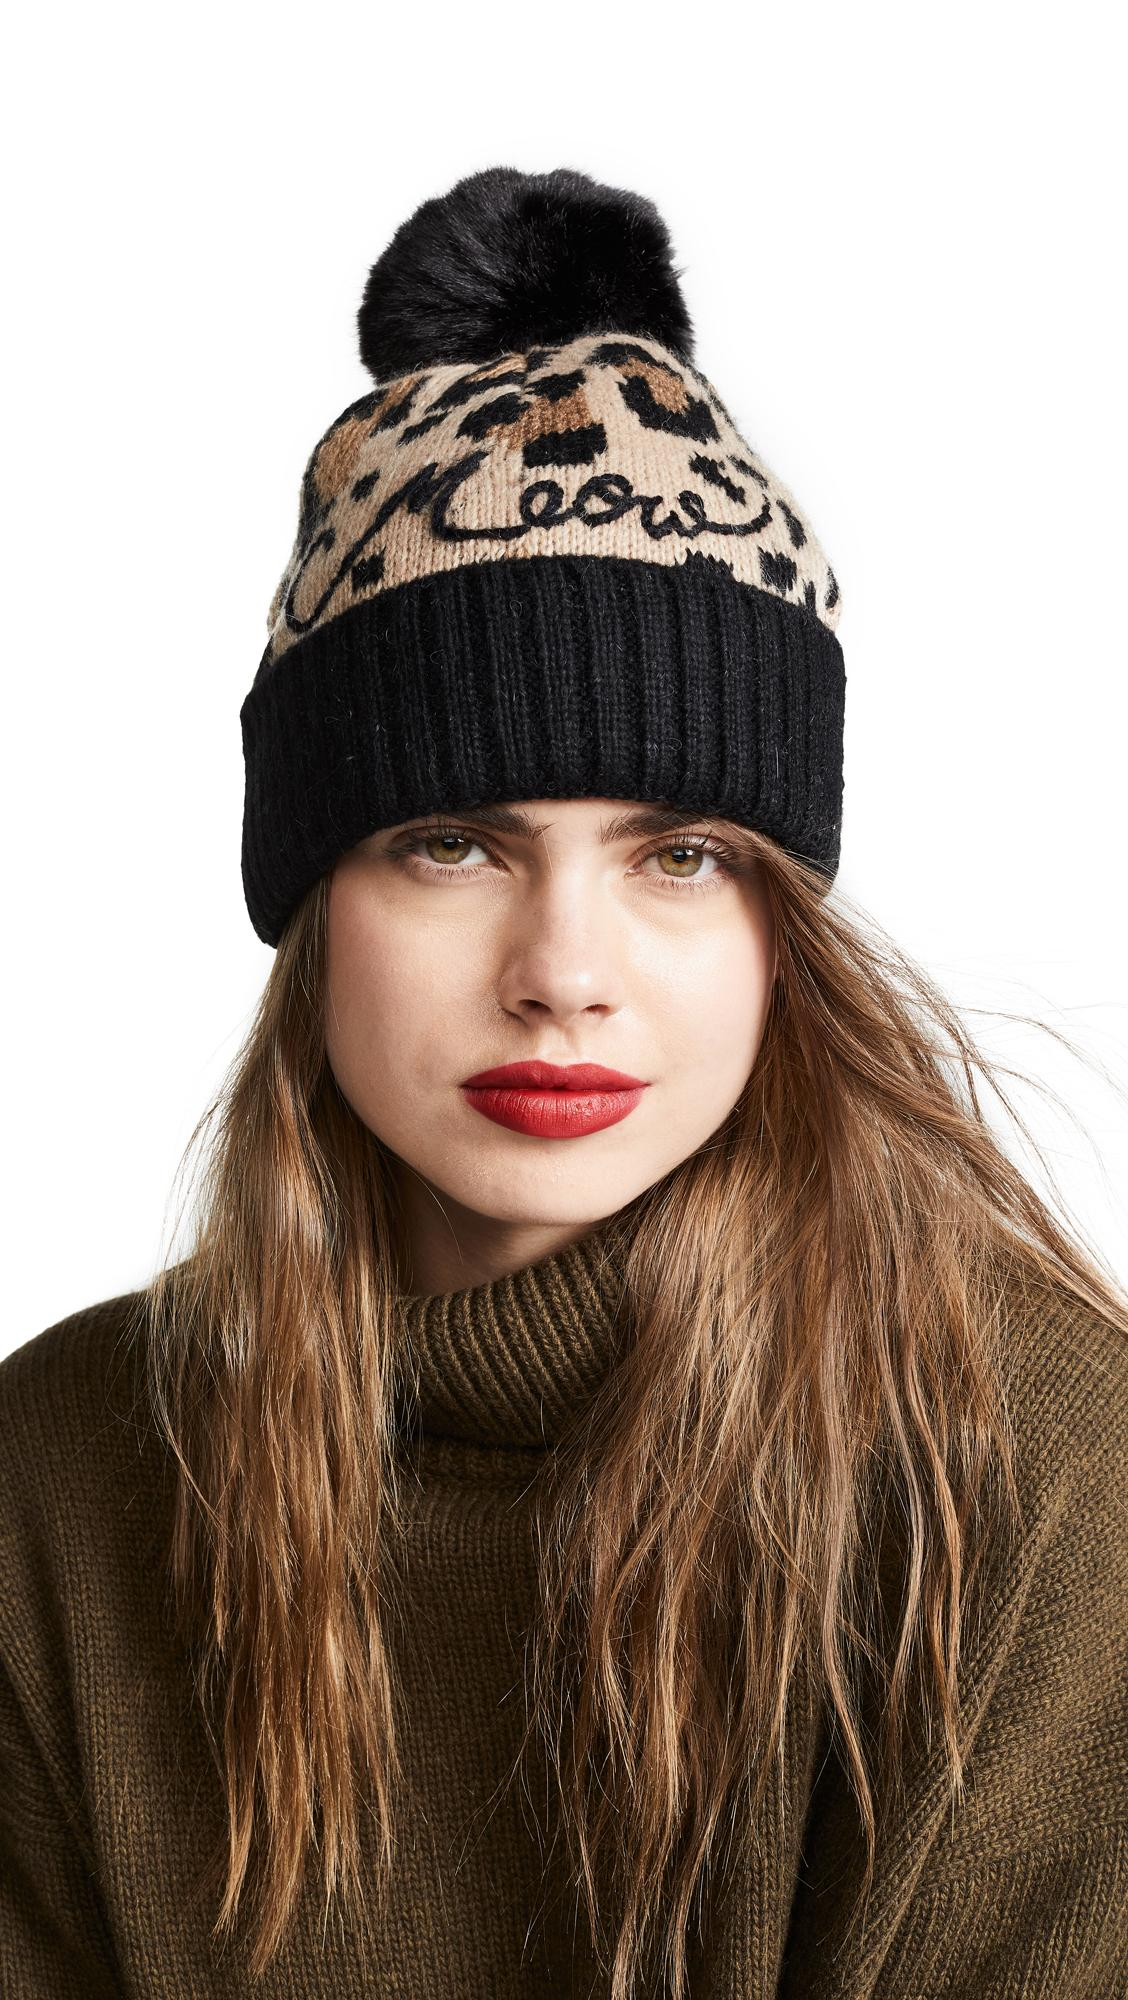 55a65a83ebfbad Kate Spade Leopard Beanie Hat In Roasted Peanut | ModeSens